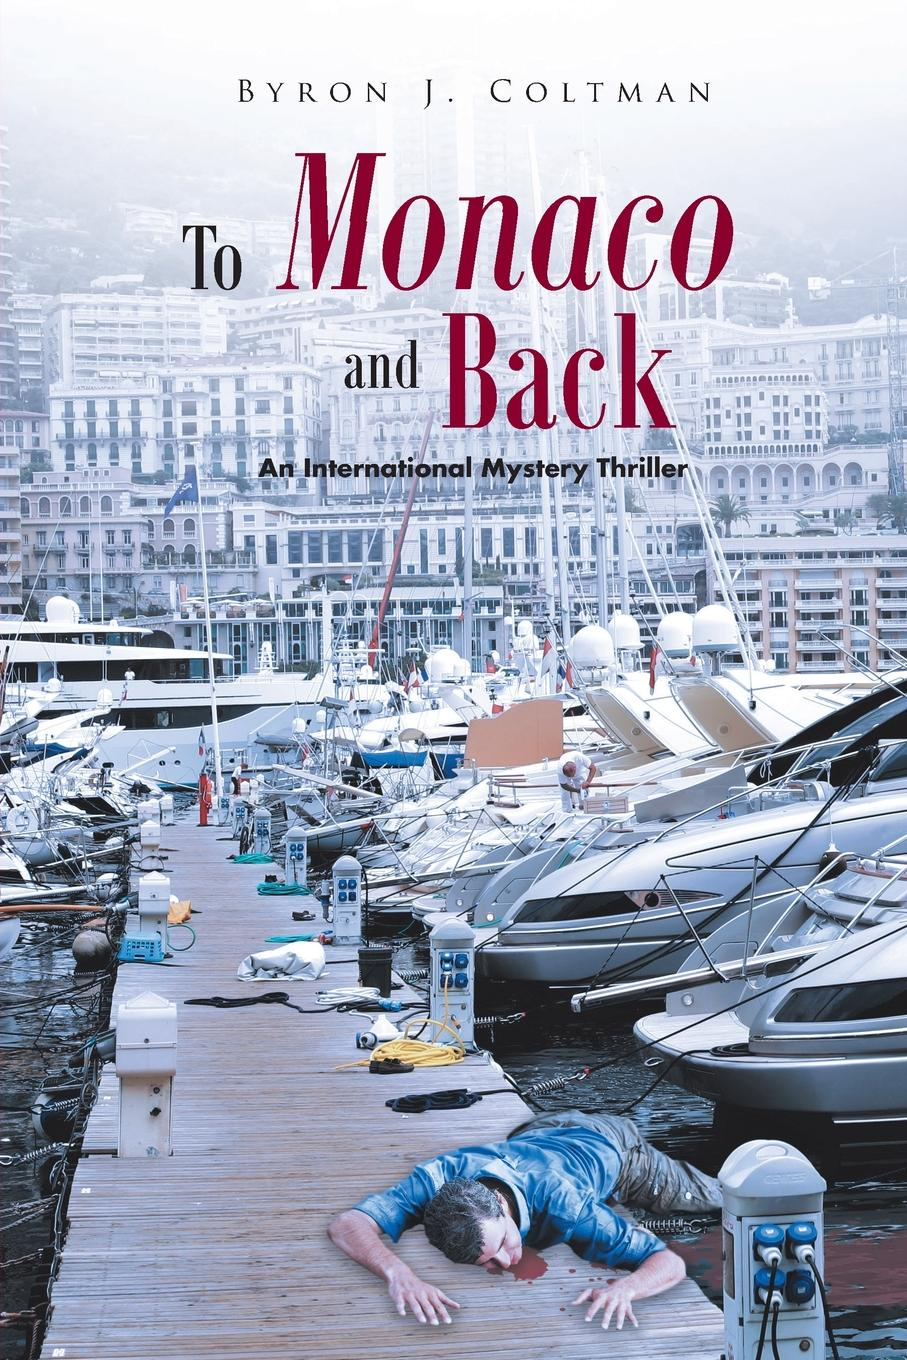 Byron J. Coltman. To Monaco and Back. An International Mystery Thriller